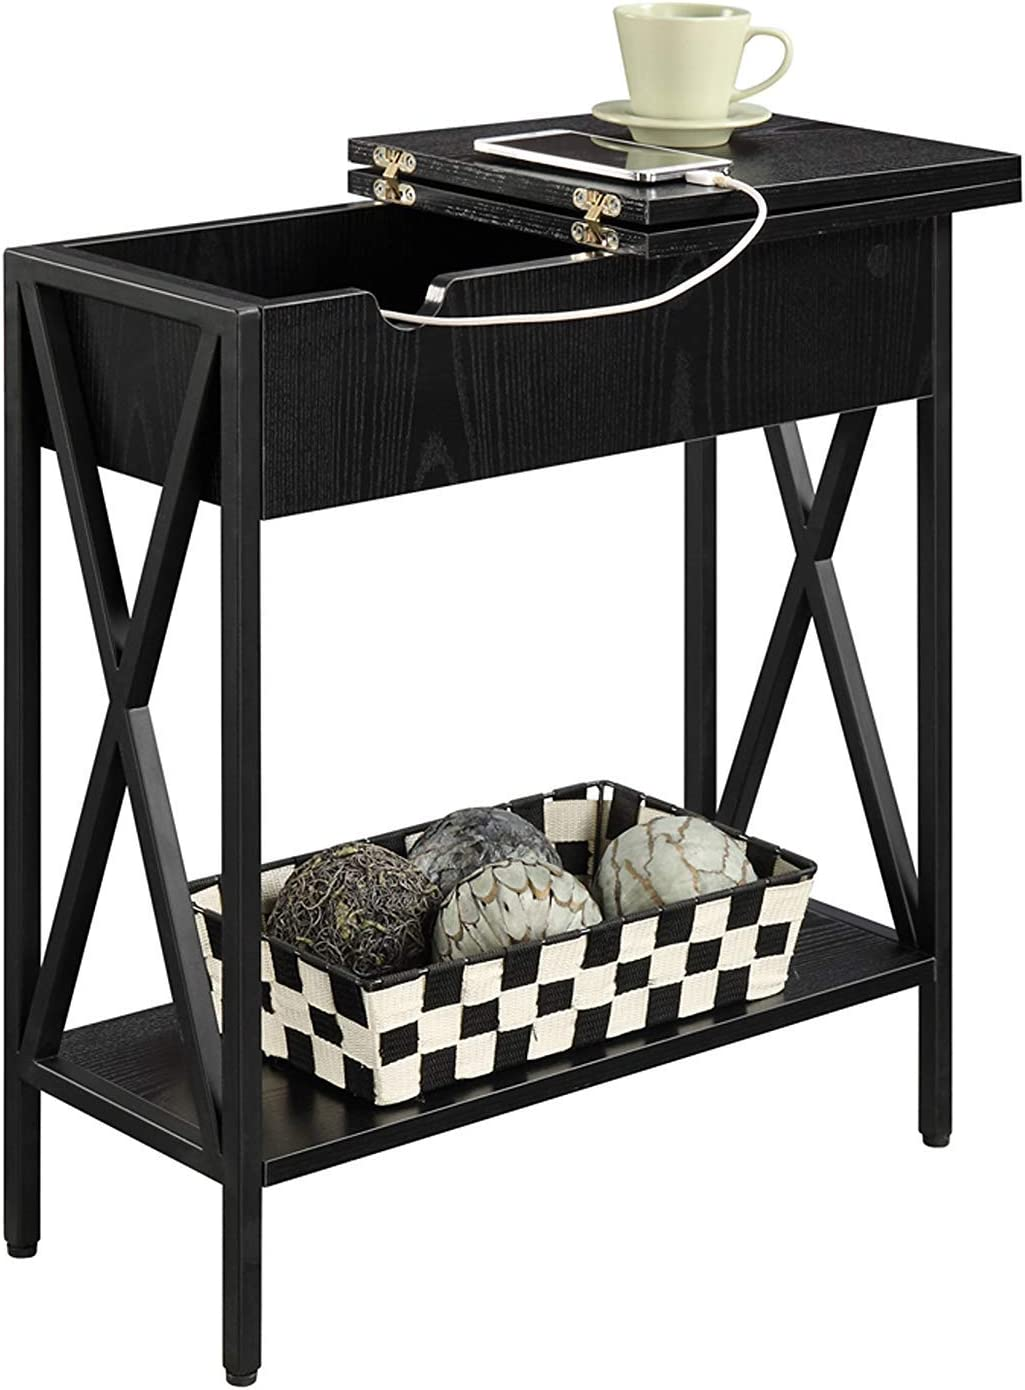 Convenience Concepts Tucson Flip Top End Table with Charging Station, Black